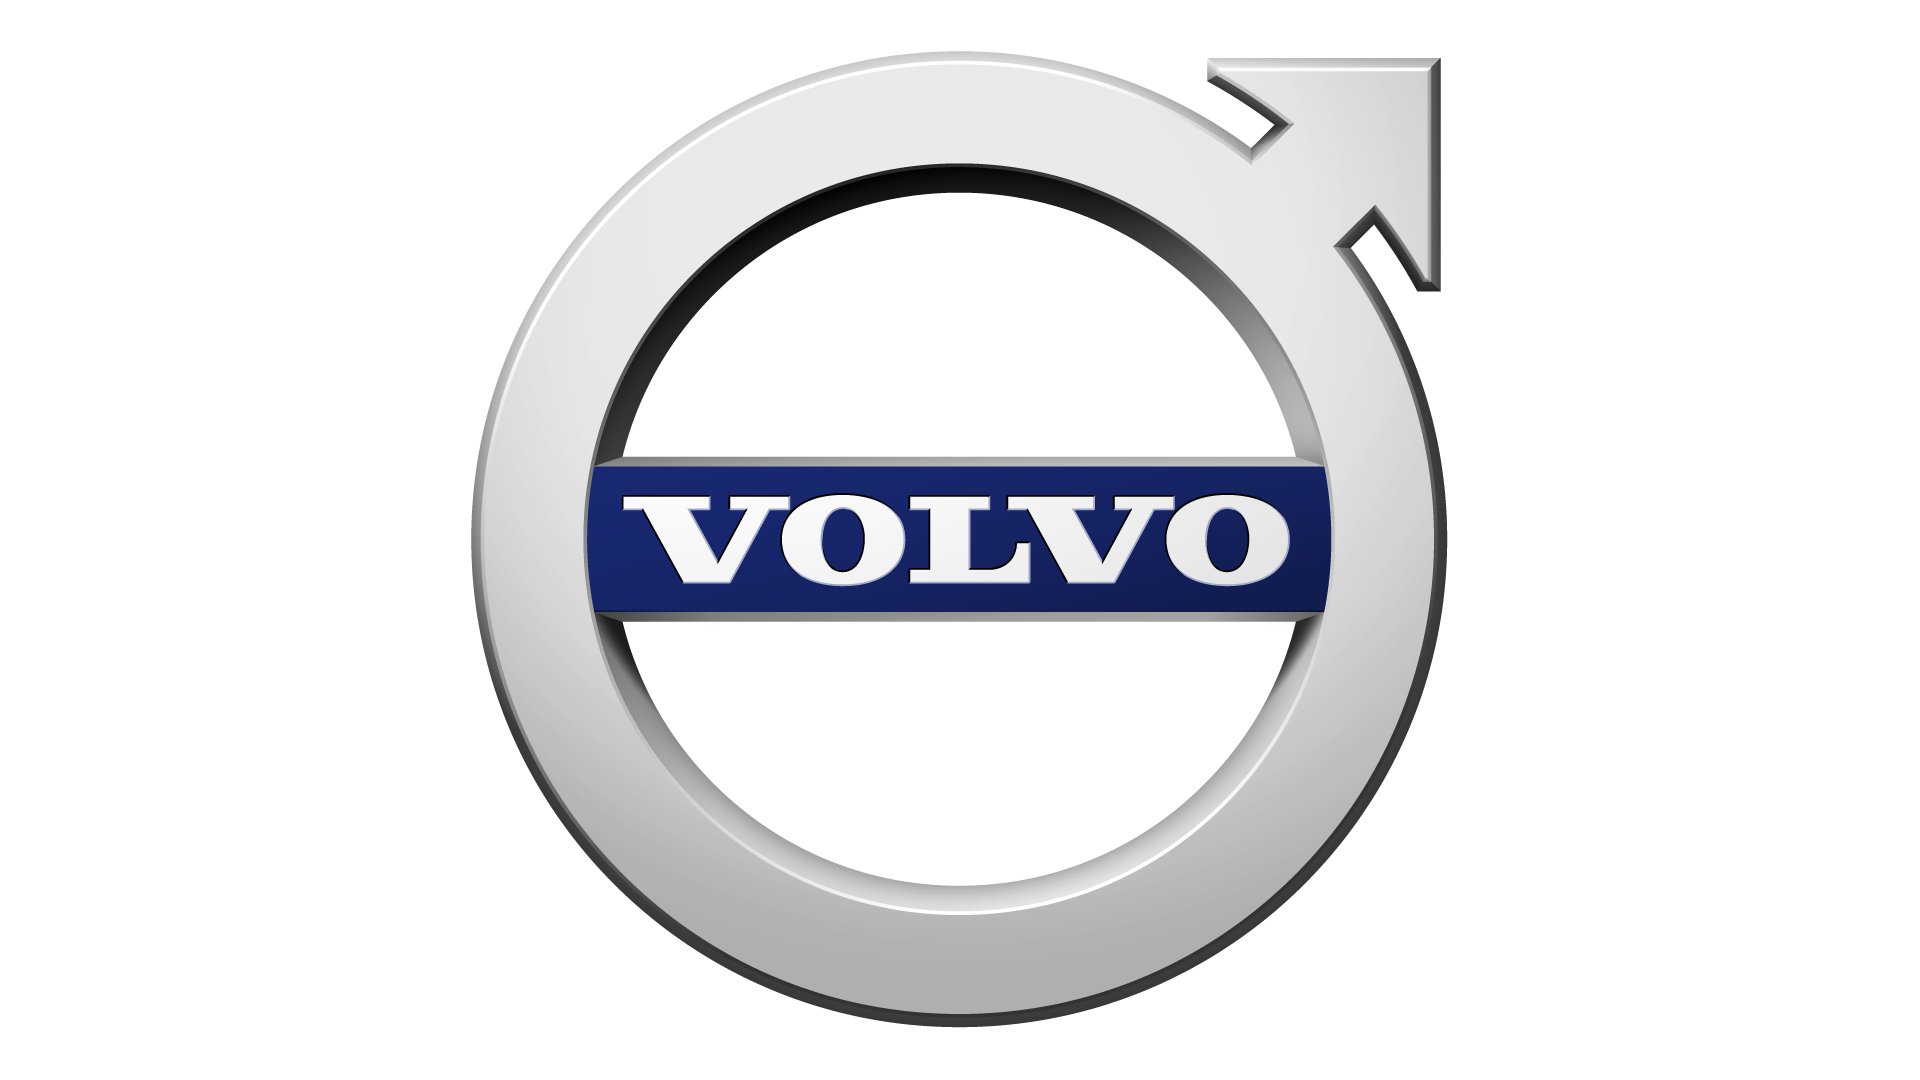 Volvo   For their new model Volvo XC40, the brand needed to showcase their new agile, compact SUV, built for the city.